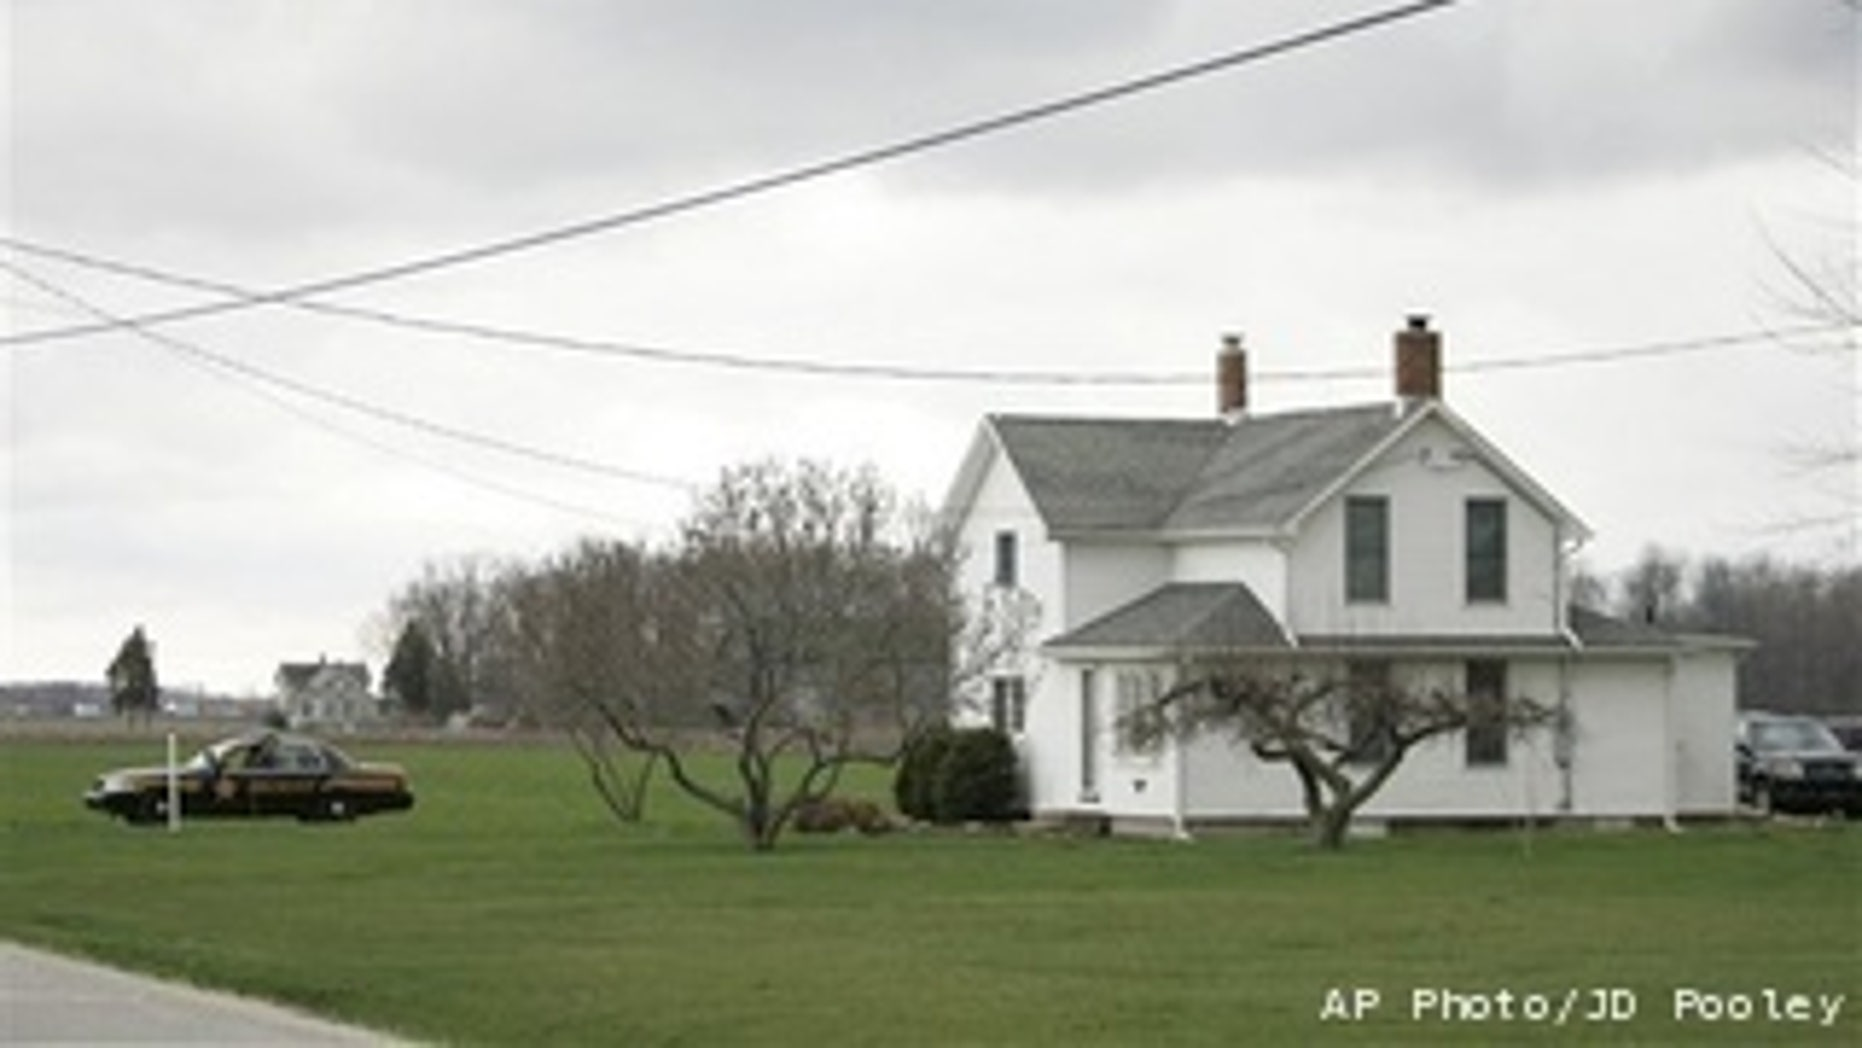 The Ohio home of Alan Atwater, who authorities say killed his three children, wife and himself inside.